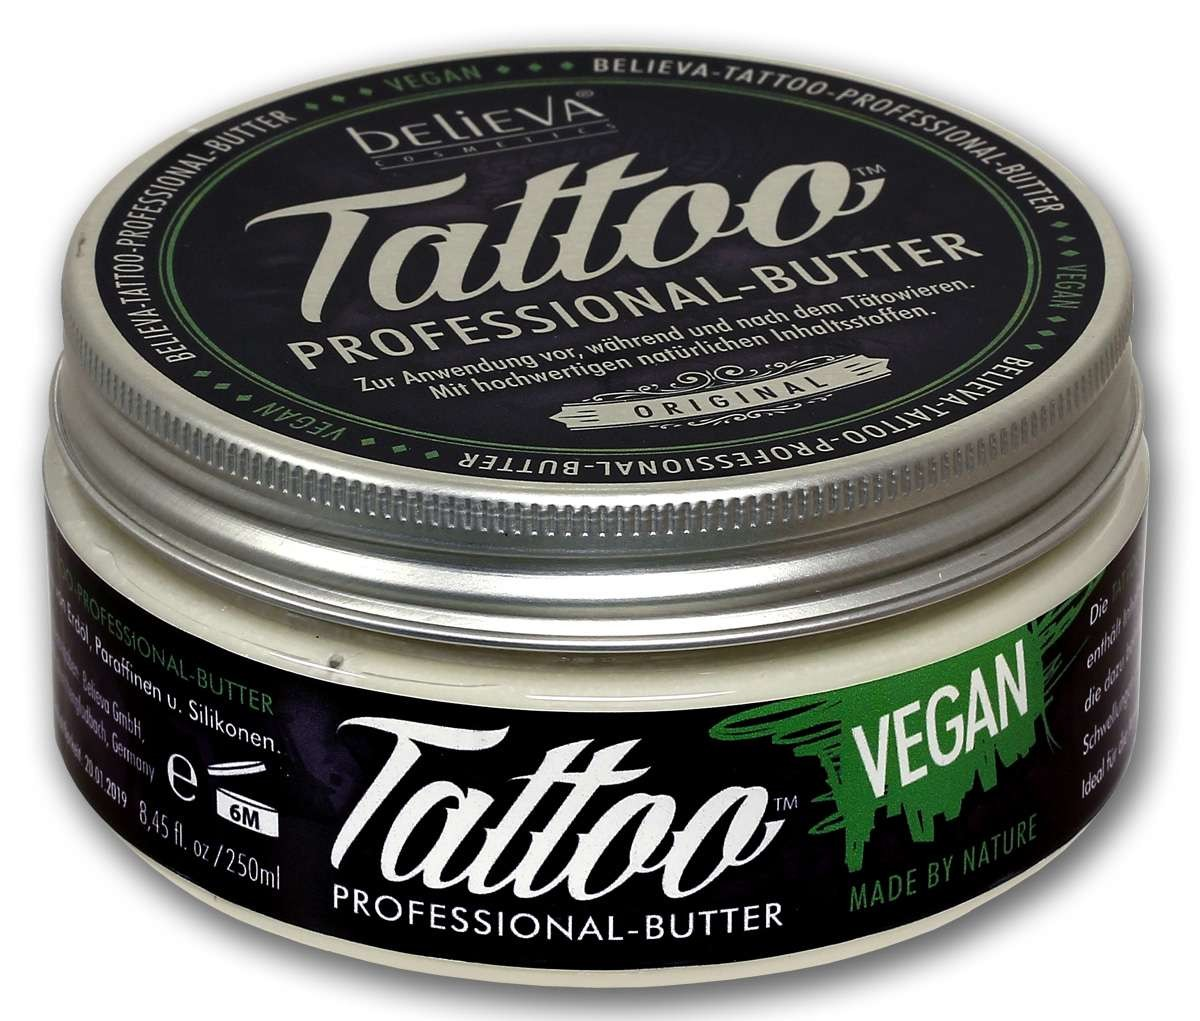 Image of Believa Professional Butter (250ml)